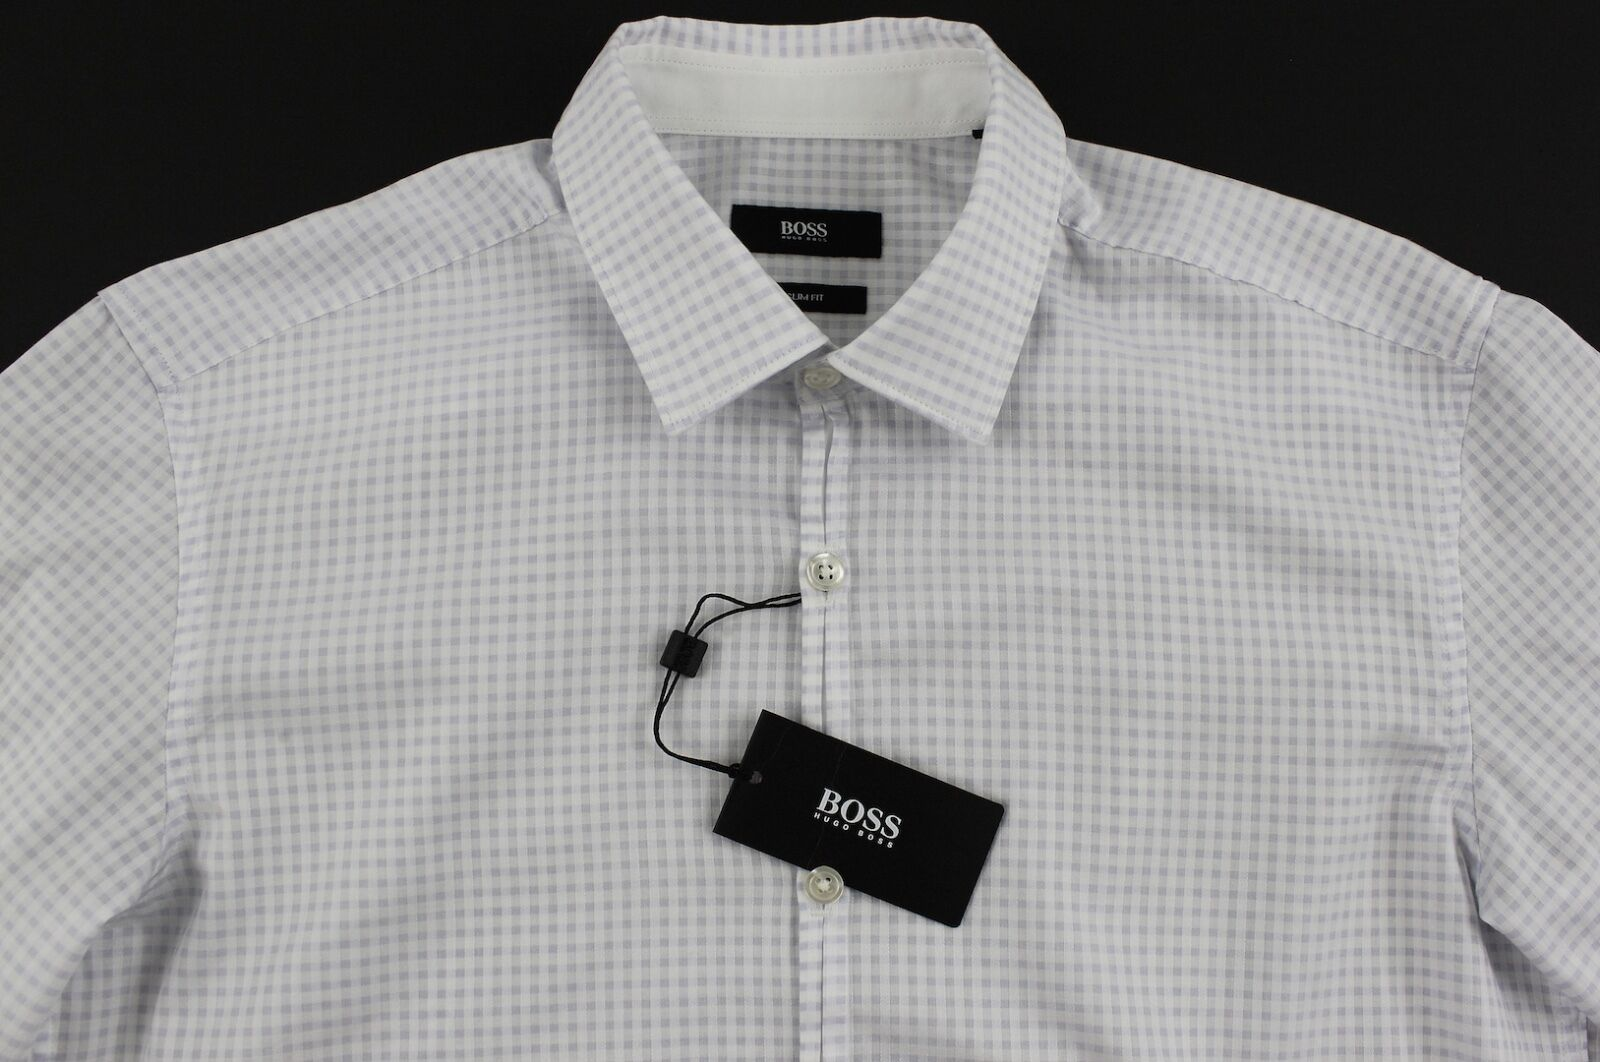 Men's HUGO BOSS White Plaid RICCARDO Shirt XL Extra Large NWT NEW + Slim Fit